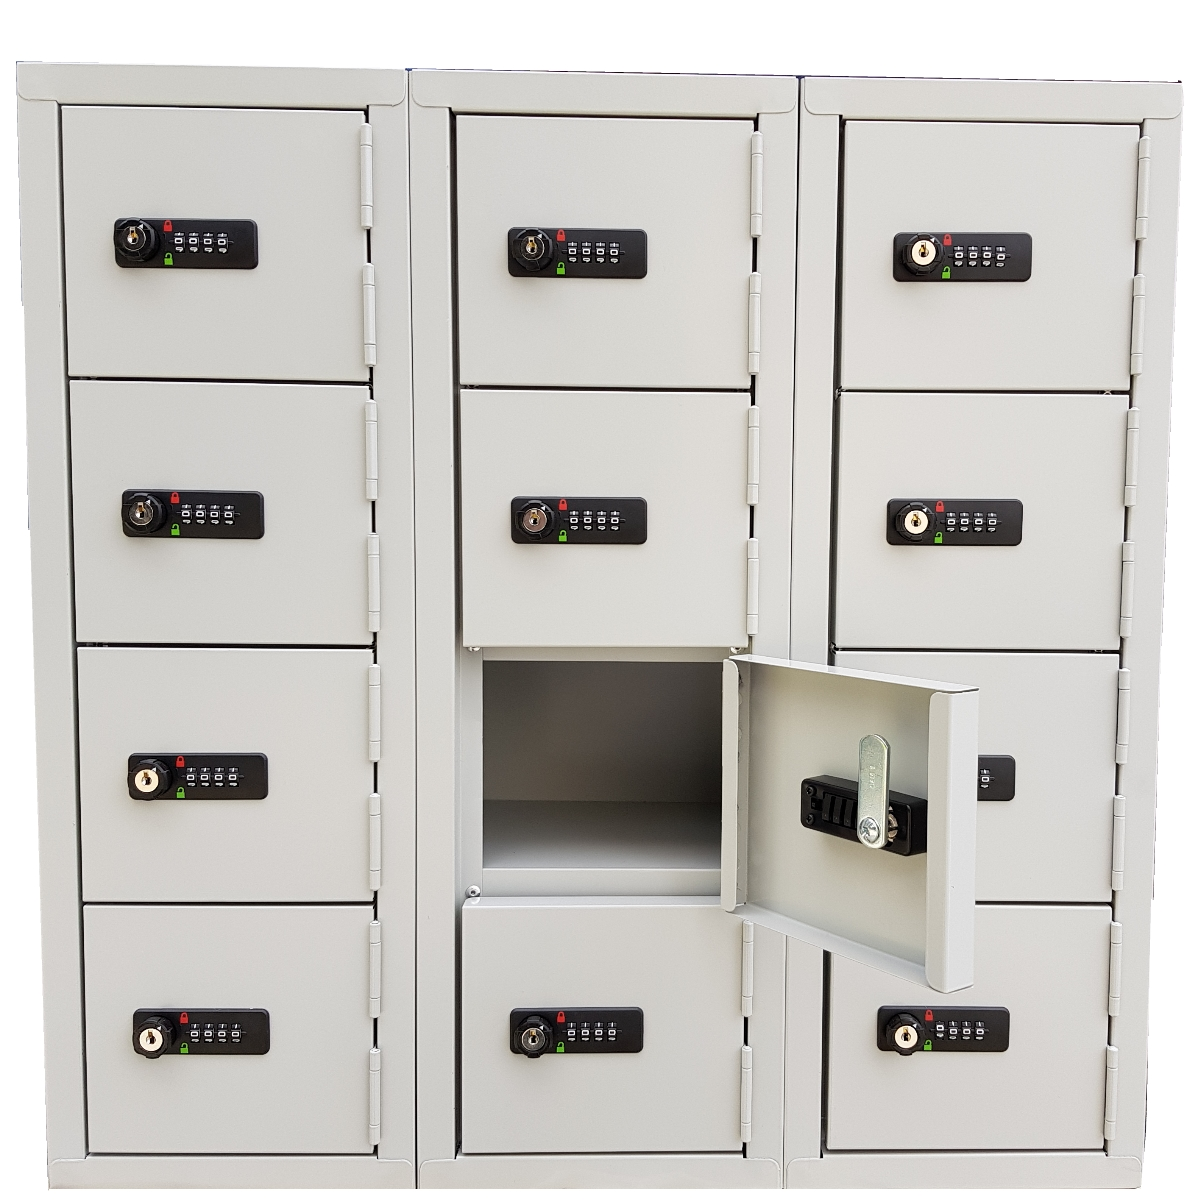 Keyless-Lockers-category